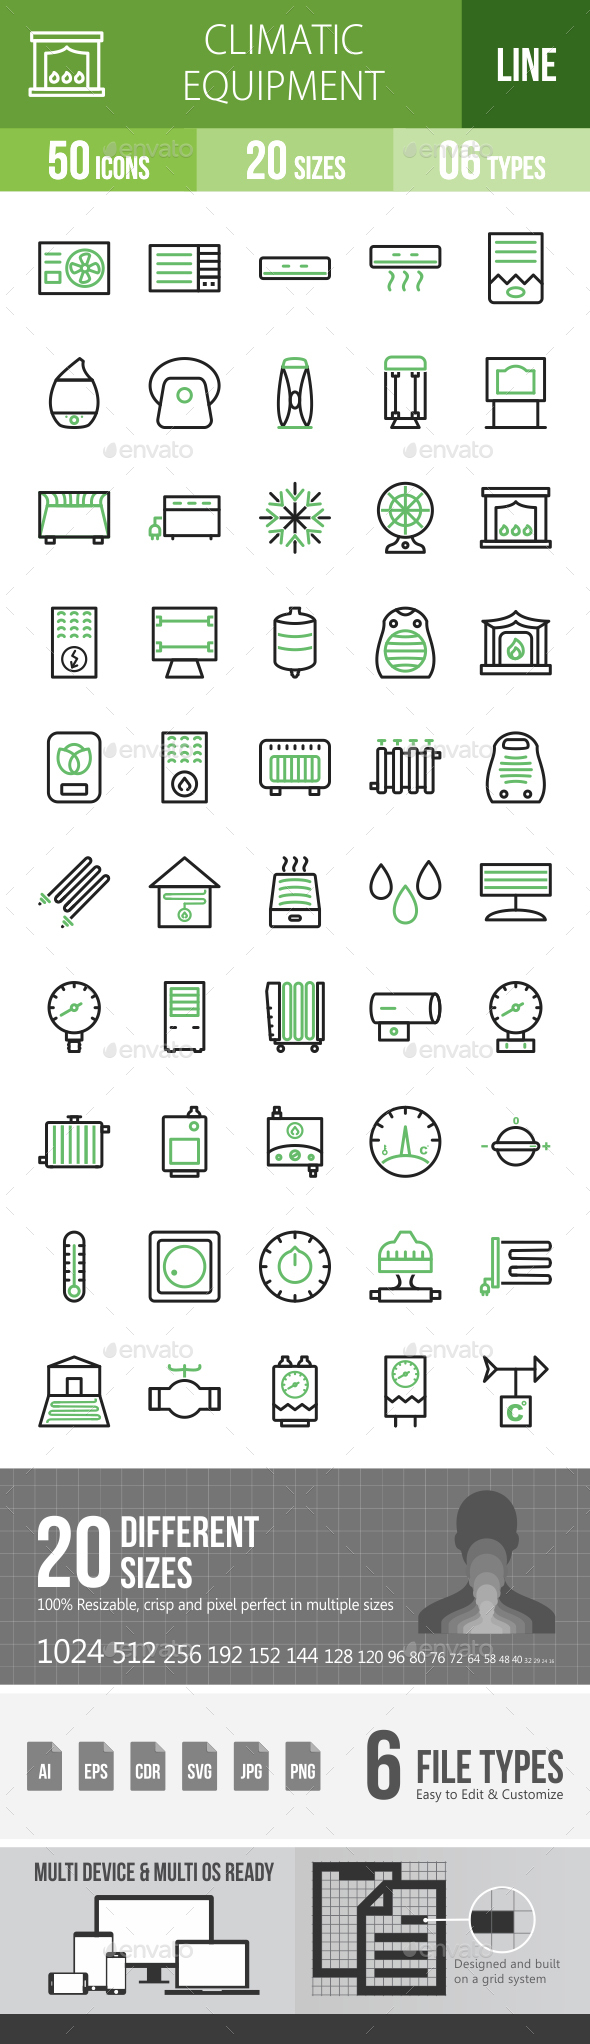 Climatic Equipment Line Green & Black Icons - Icons